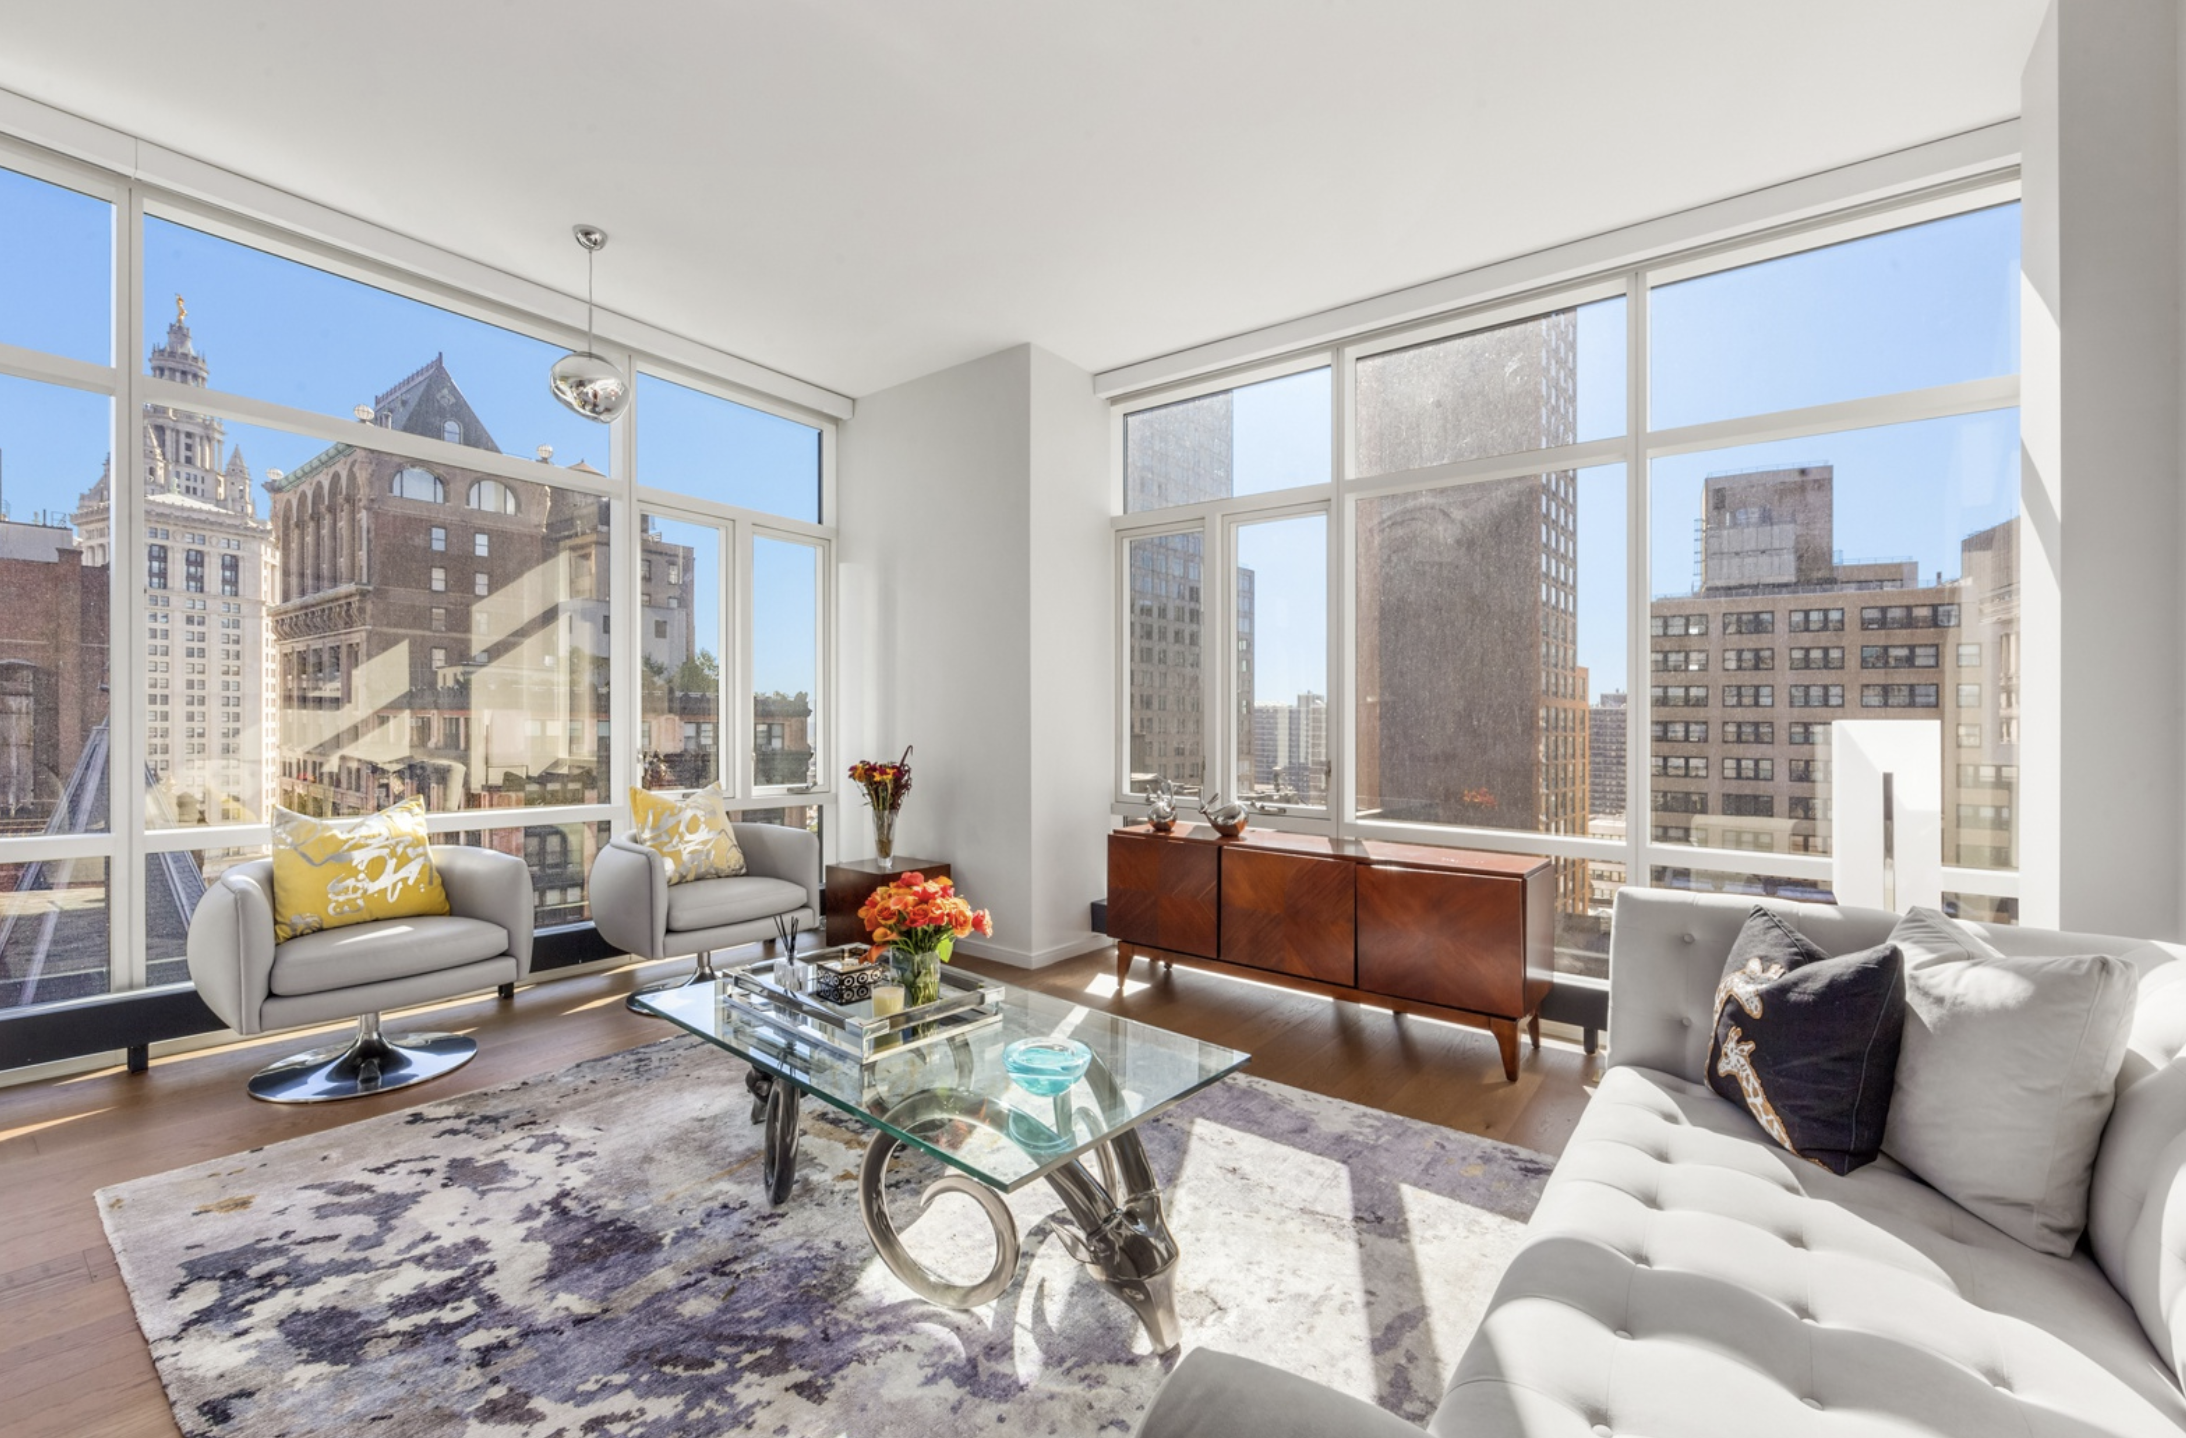 5 BEEKMAN STREET, 18B - $1,685,000 // 1 Beds // 1 Baths // 855 SQFTAn elegant corner condo boasting charming views of lower Manhattan, this pristine home is a portrait of classic city living. Features of this 855 sq. ft. apartment include gorgeous hardwood floors, stunning wall-to-wall floor-to-ceiling windows, motorized shades, northern and eastern exposure, central heating and cooling, and a convenient in-unit washer/dryer.